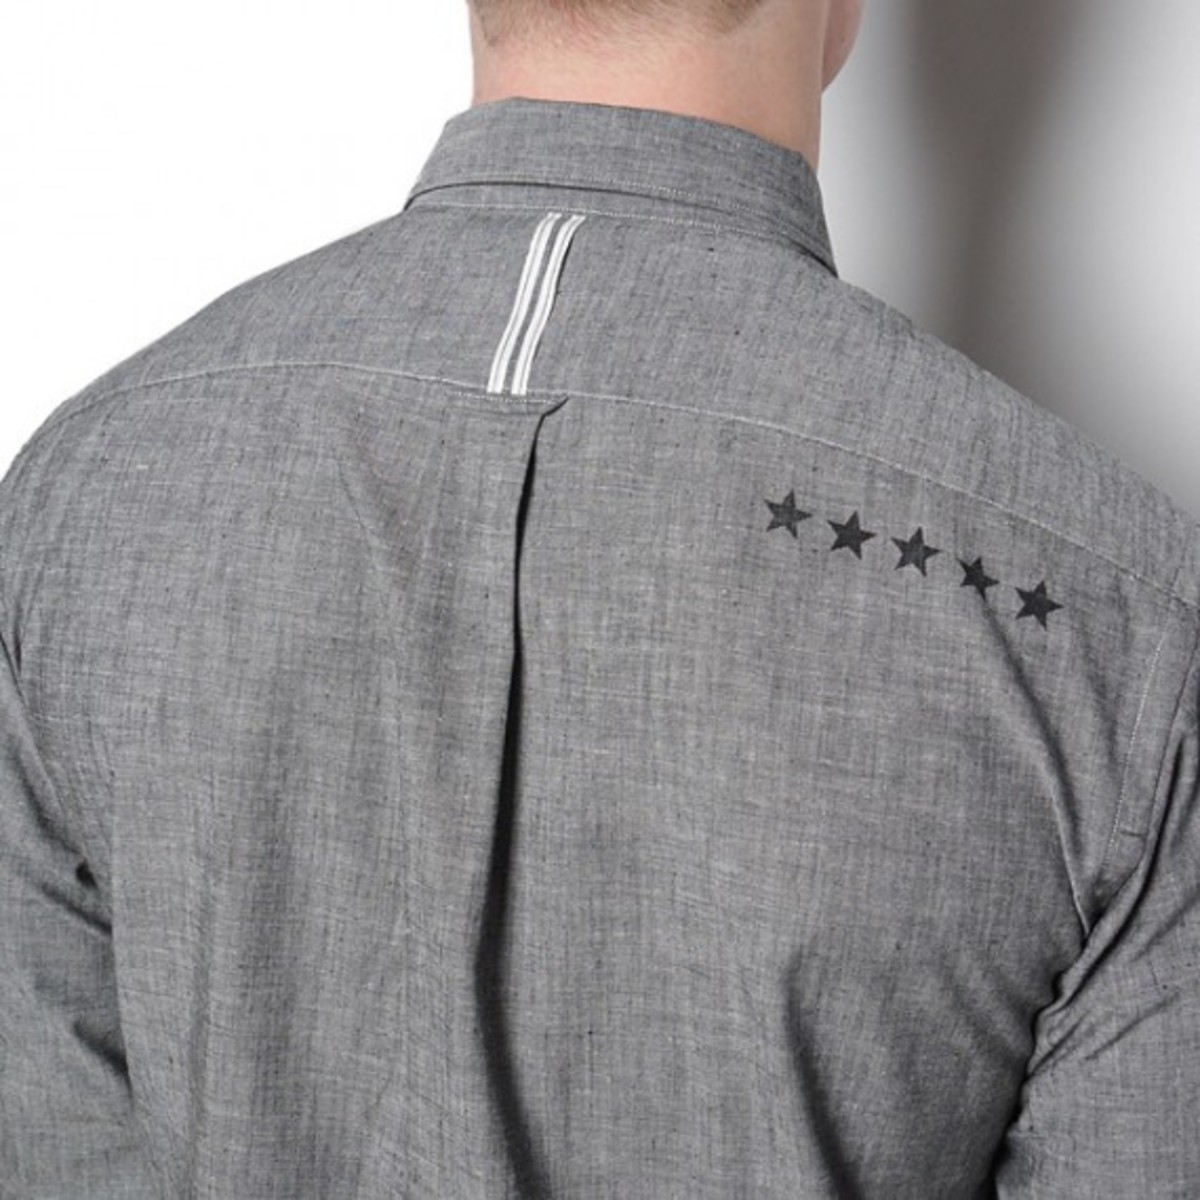 haven-deluxe-hamilton-chambray-shirt-17